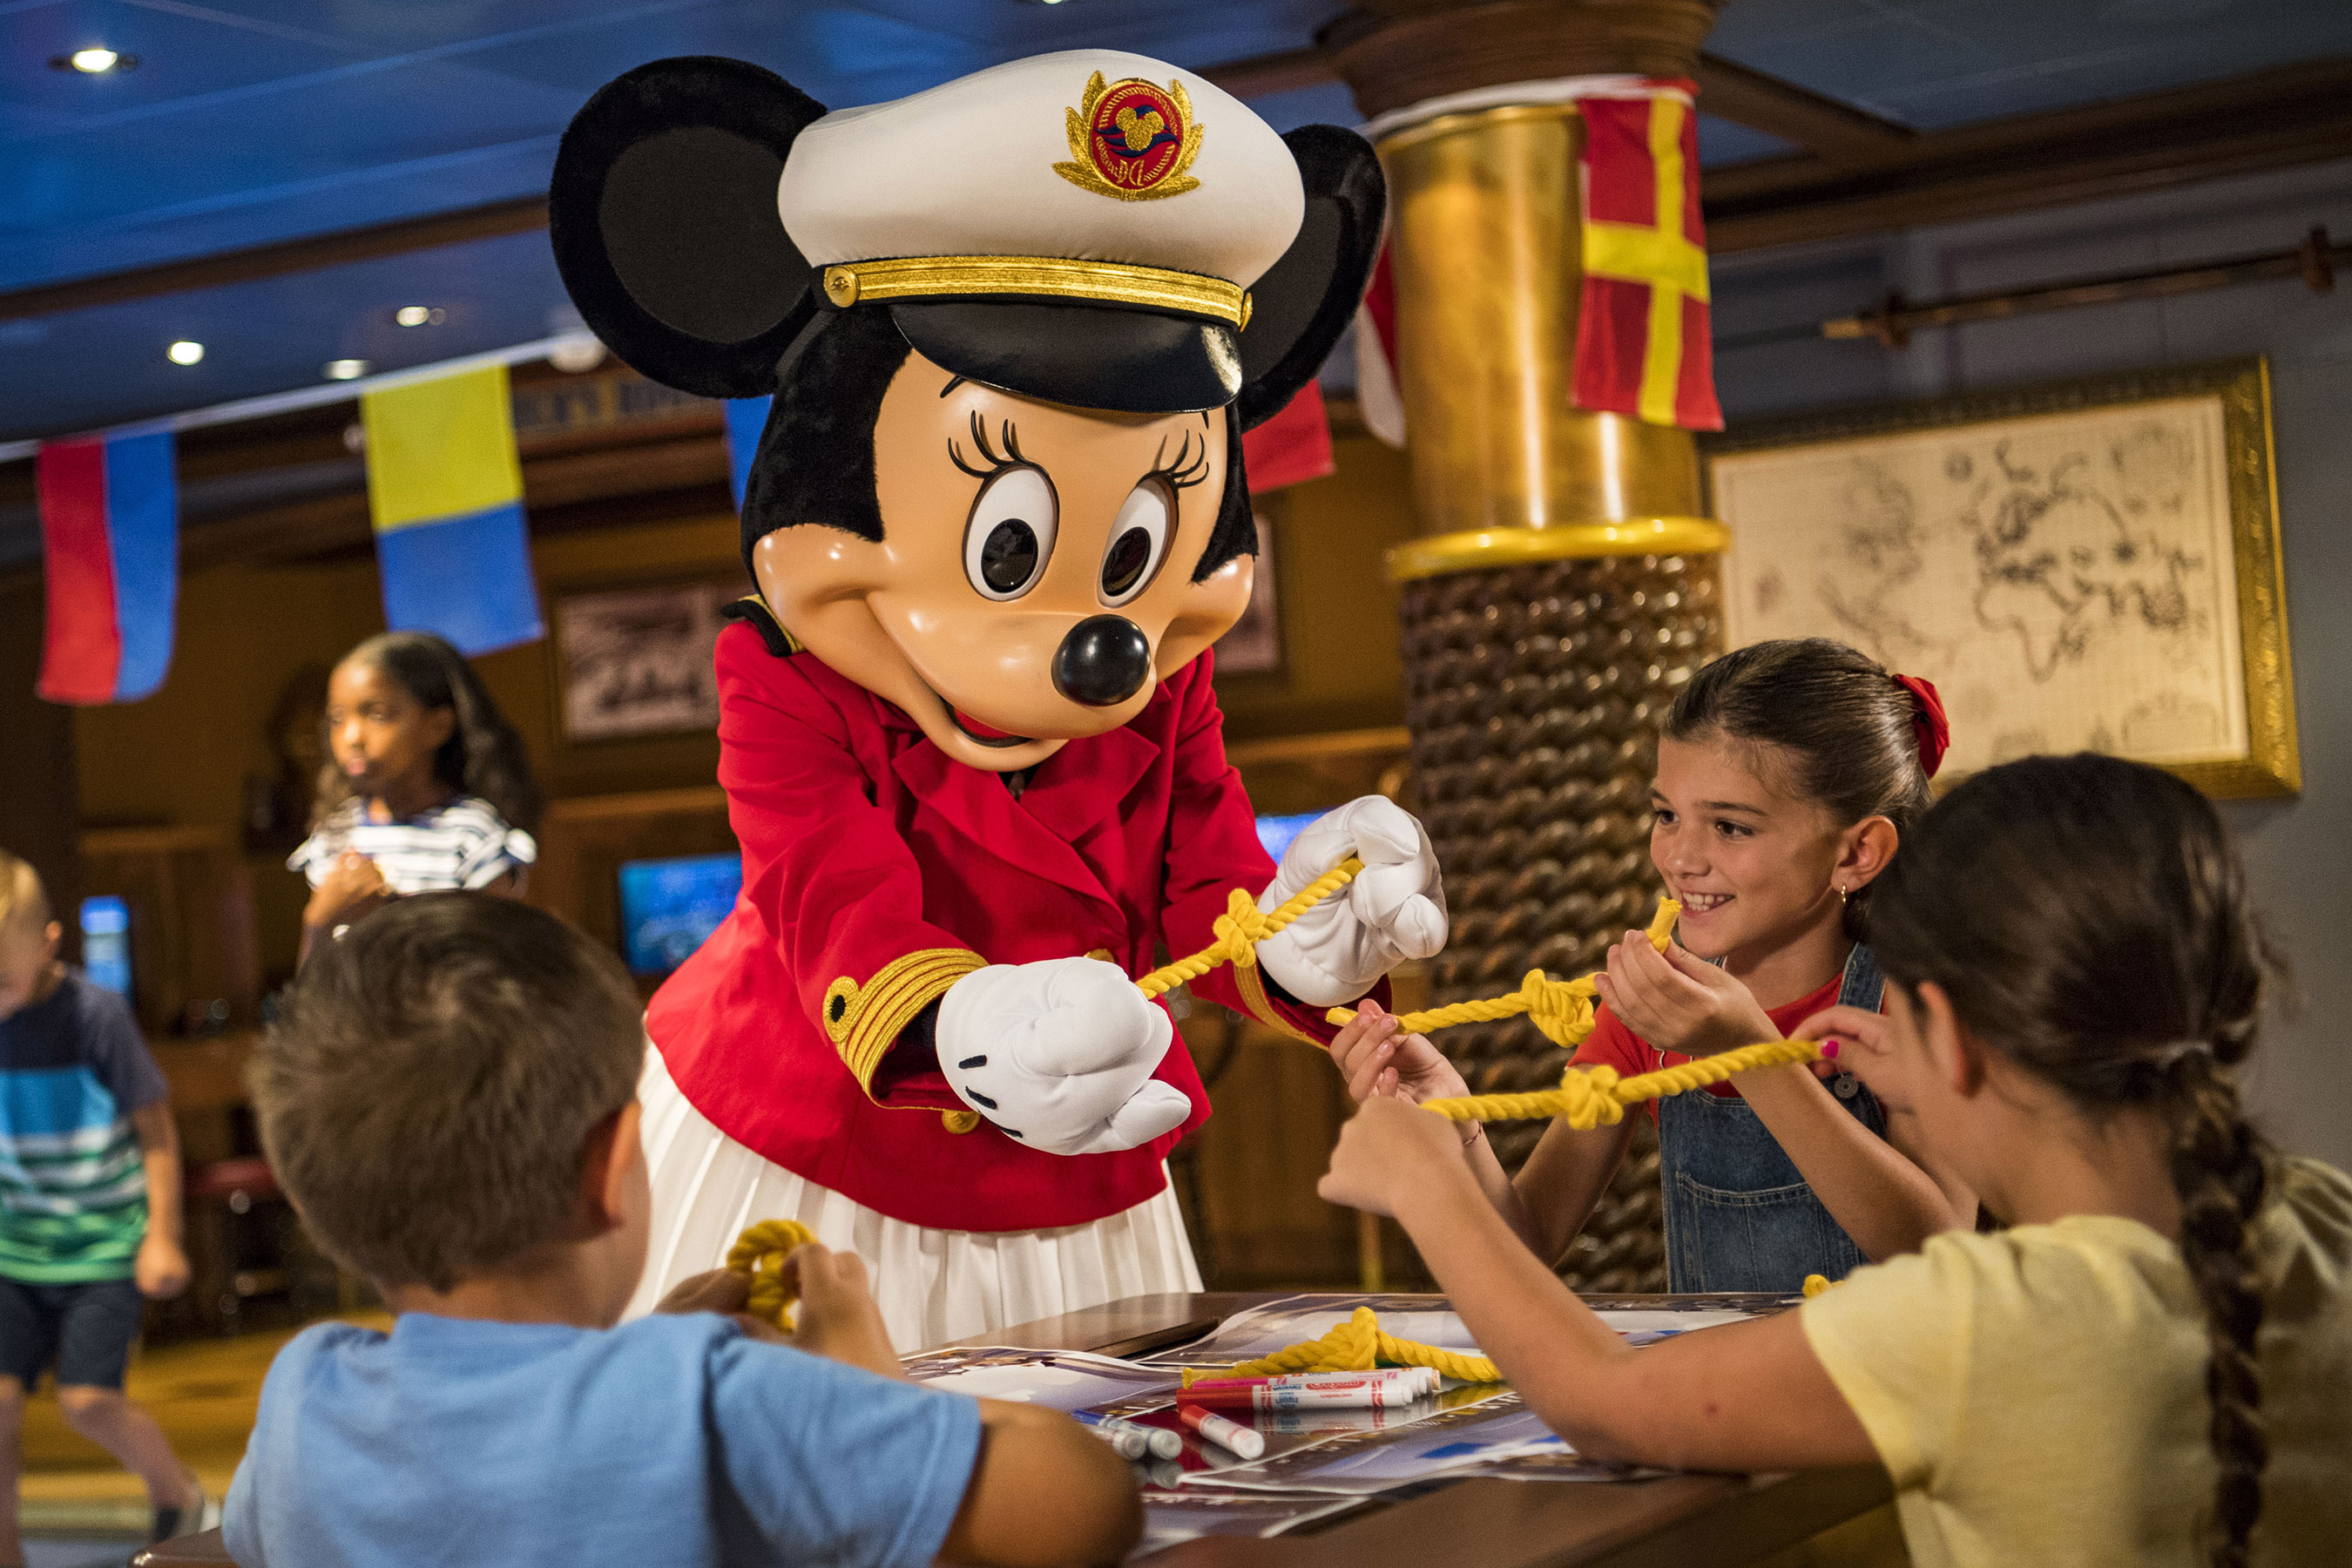 Onboard Disney Cruise Line ships later this year, Captain Minnie Mouse will appear in an all-new youth activity where young captain hopefuls practice STEM (science, technology, engineering and math) skills in a fun maritime-themed activity. The debut of Captain Minnie Mouse is part of a collection of new initiatives aiming to inspire the next generation of female leaders in the maritime industry. (Matt Stroshane, photographer)